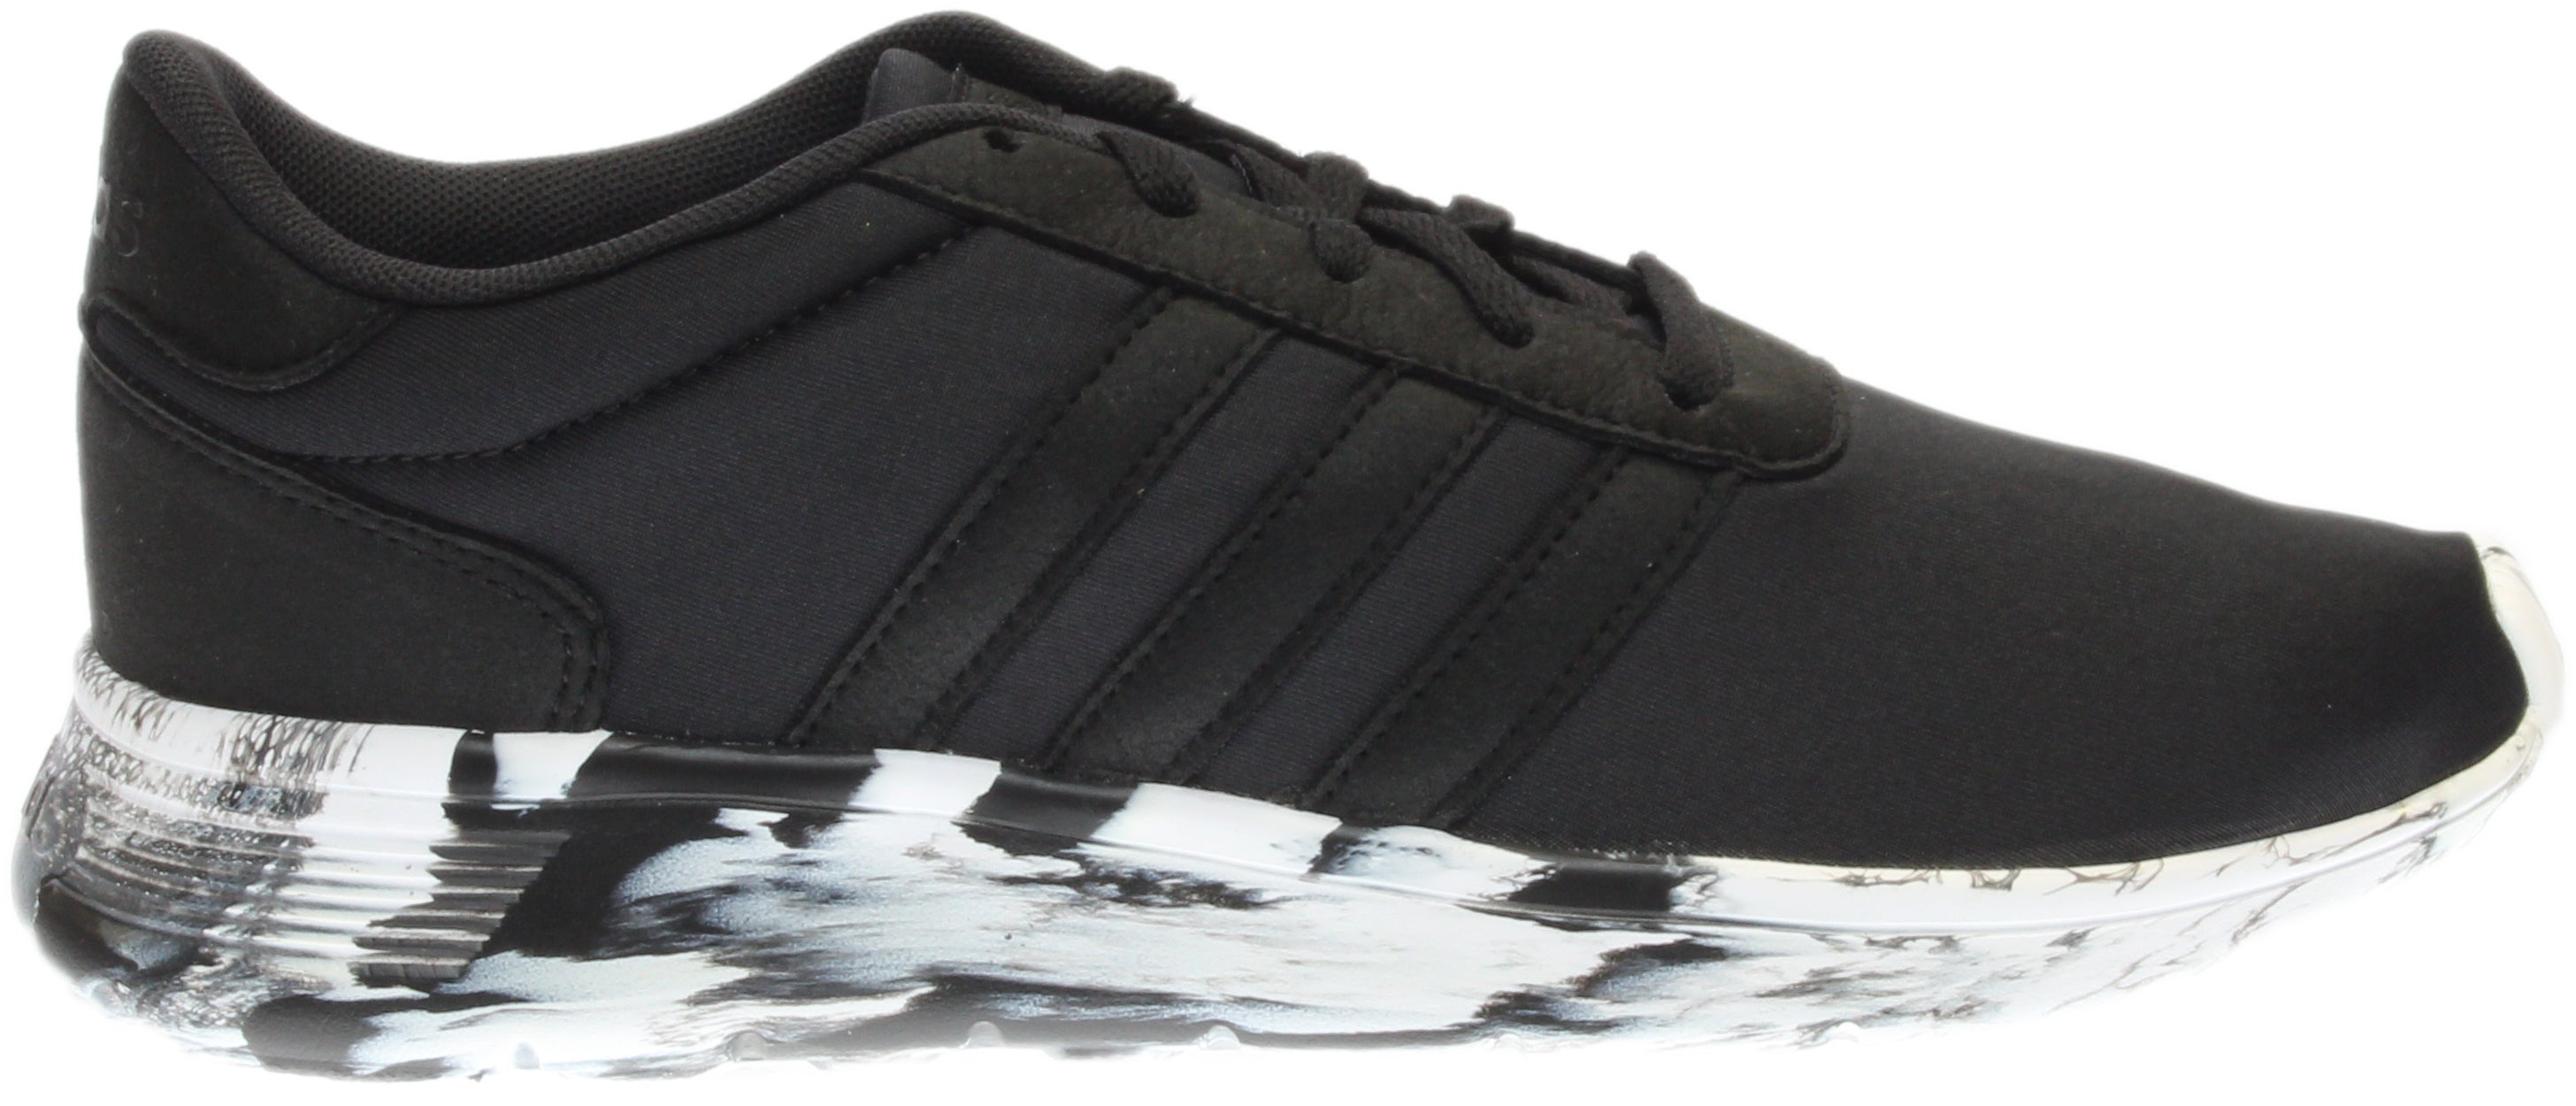 adidas Lite Racer Black - Womens  - Size